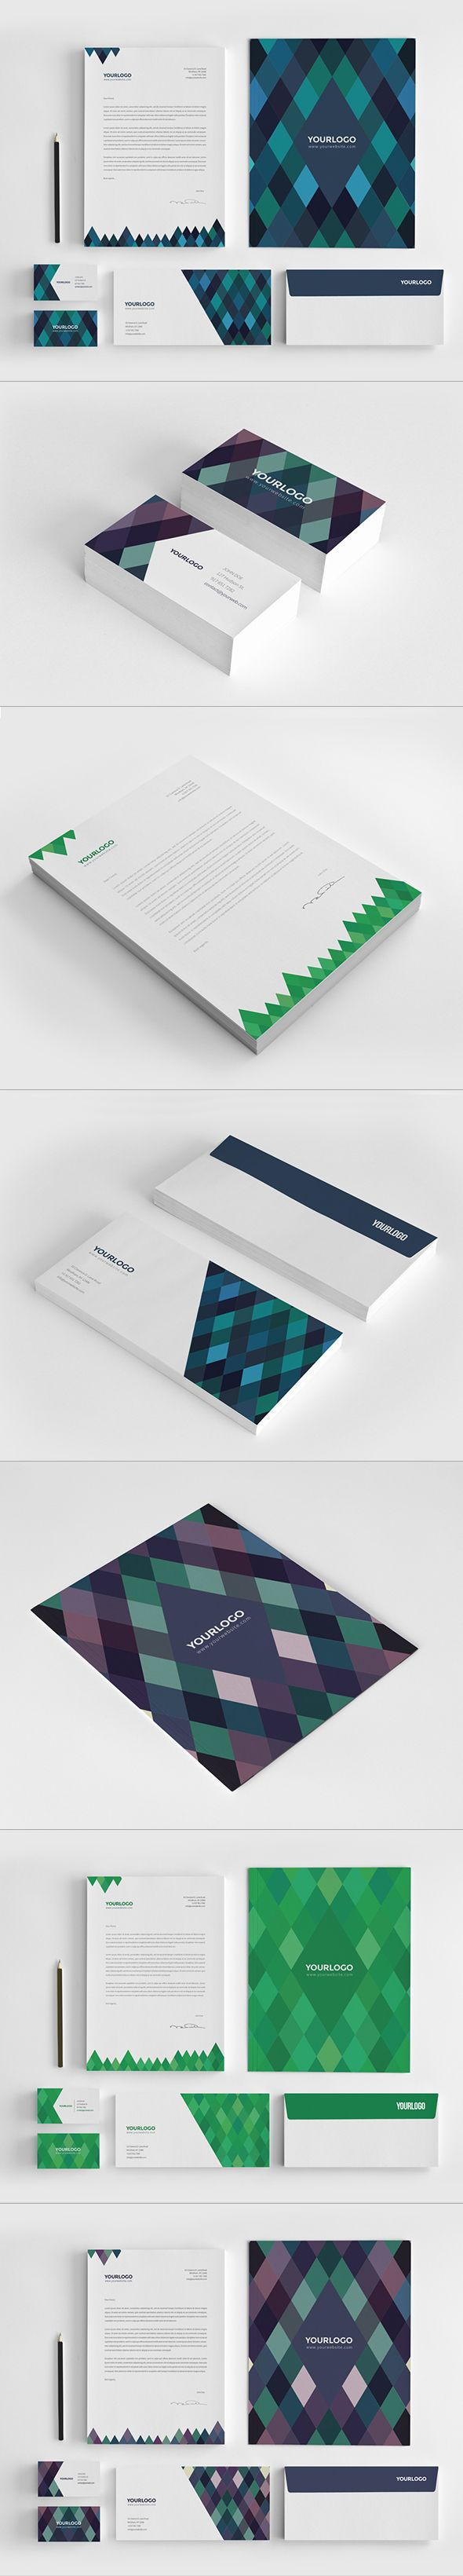 Diamonds Stationery Pack by Abra Design, via Behance #branding #identity